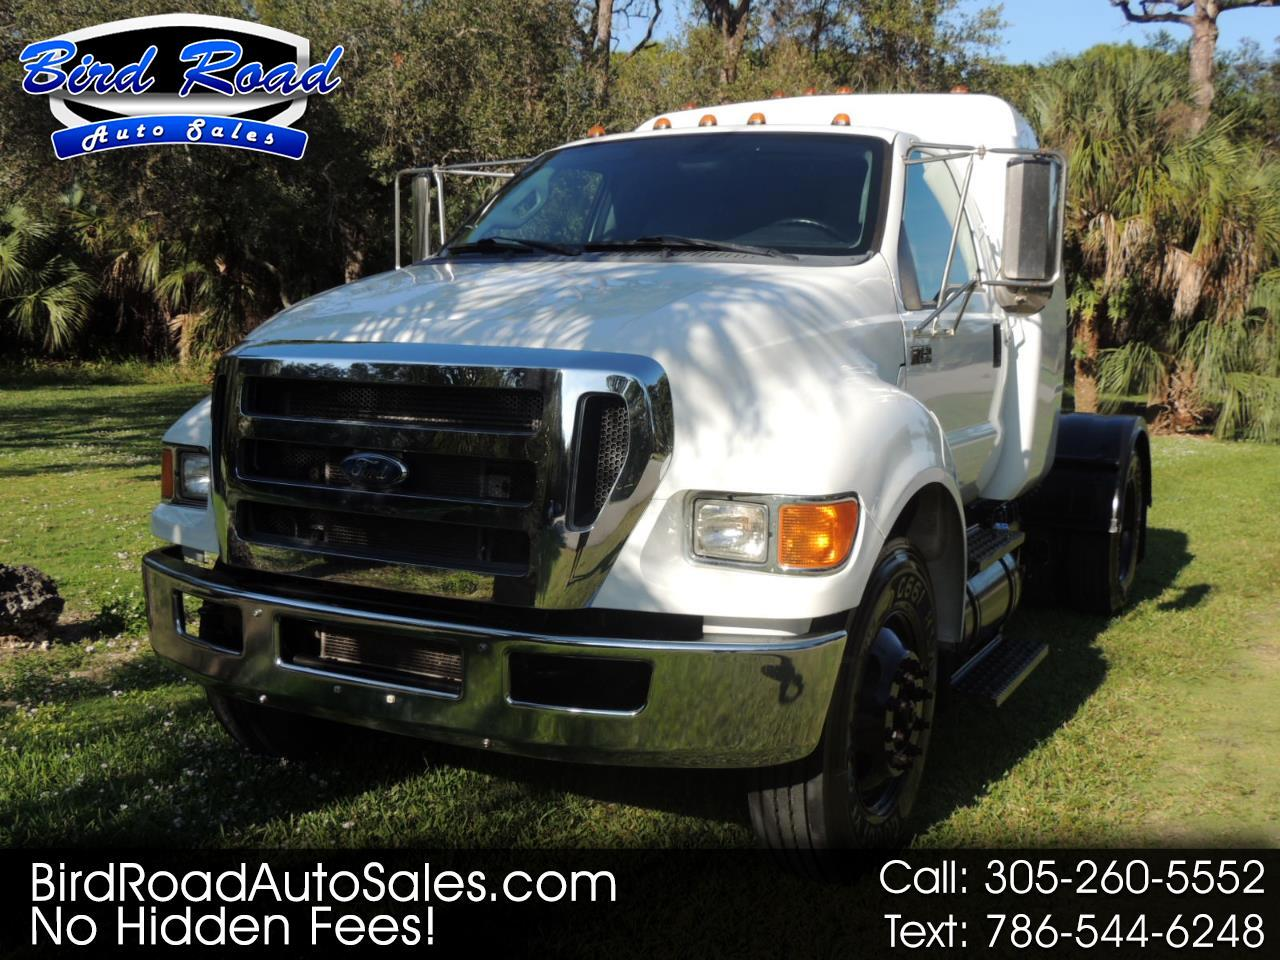 Ford Super Duty F-750 Straight Frame Reg Cab XLT 2015